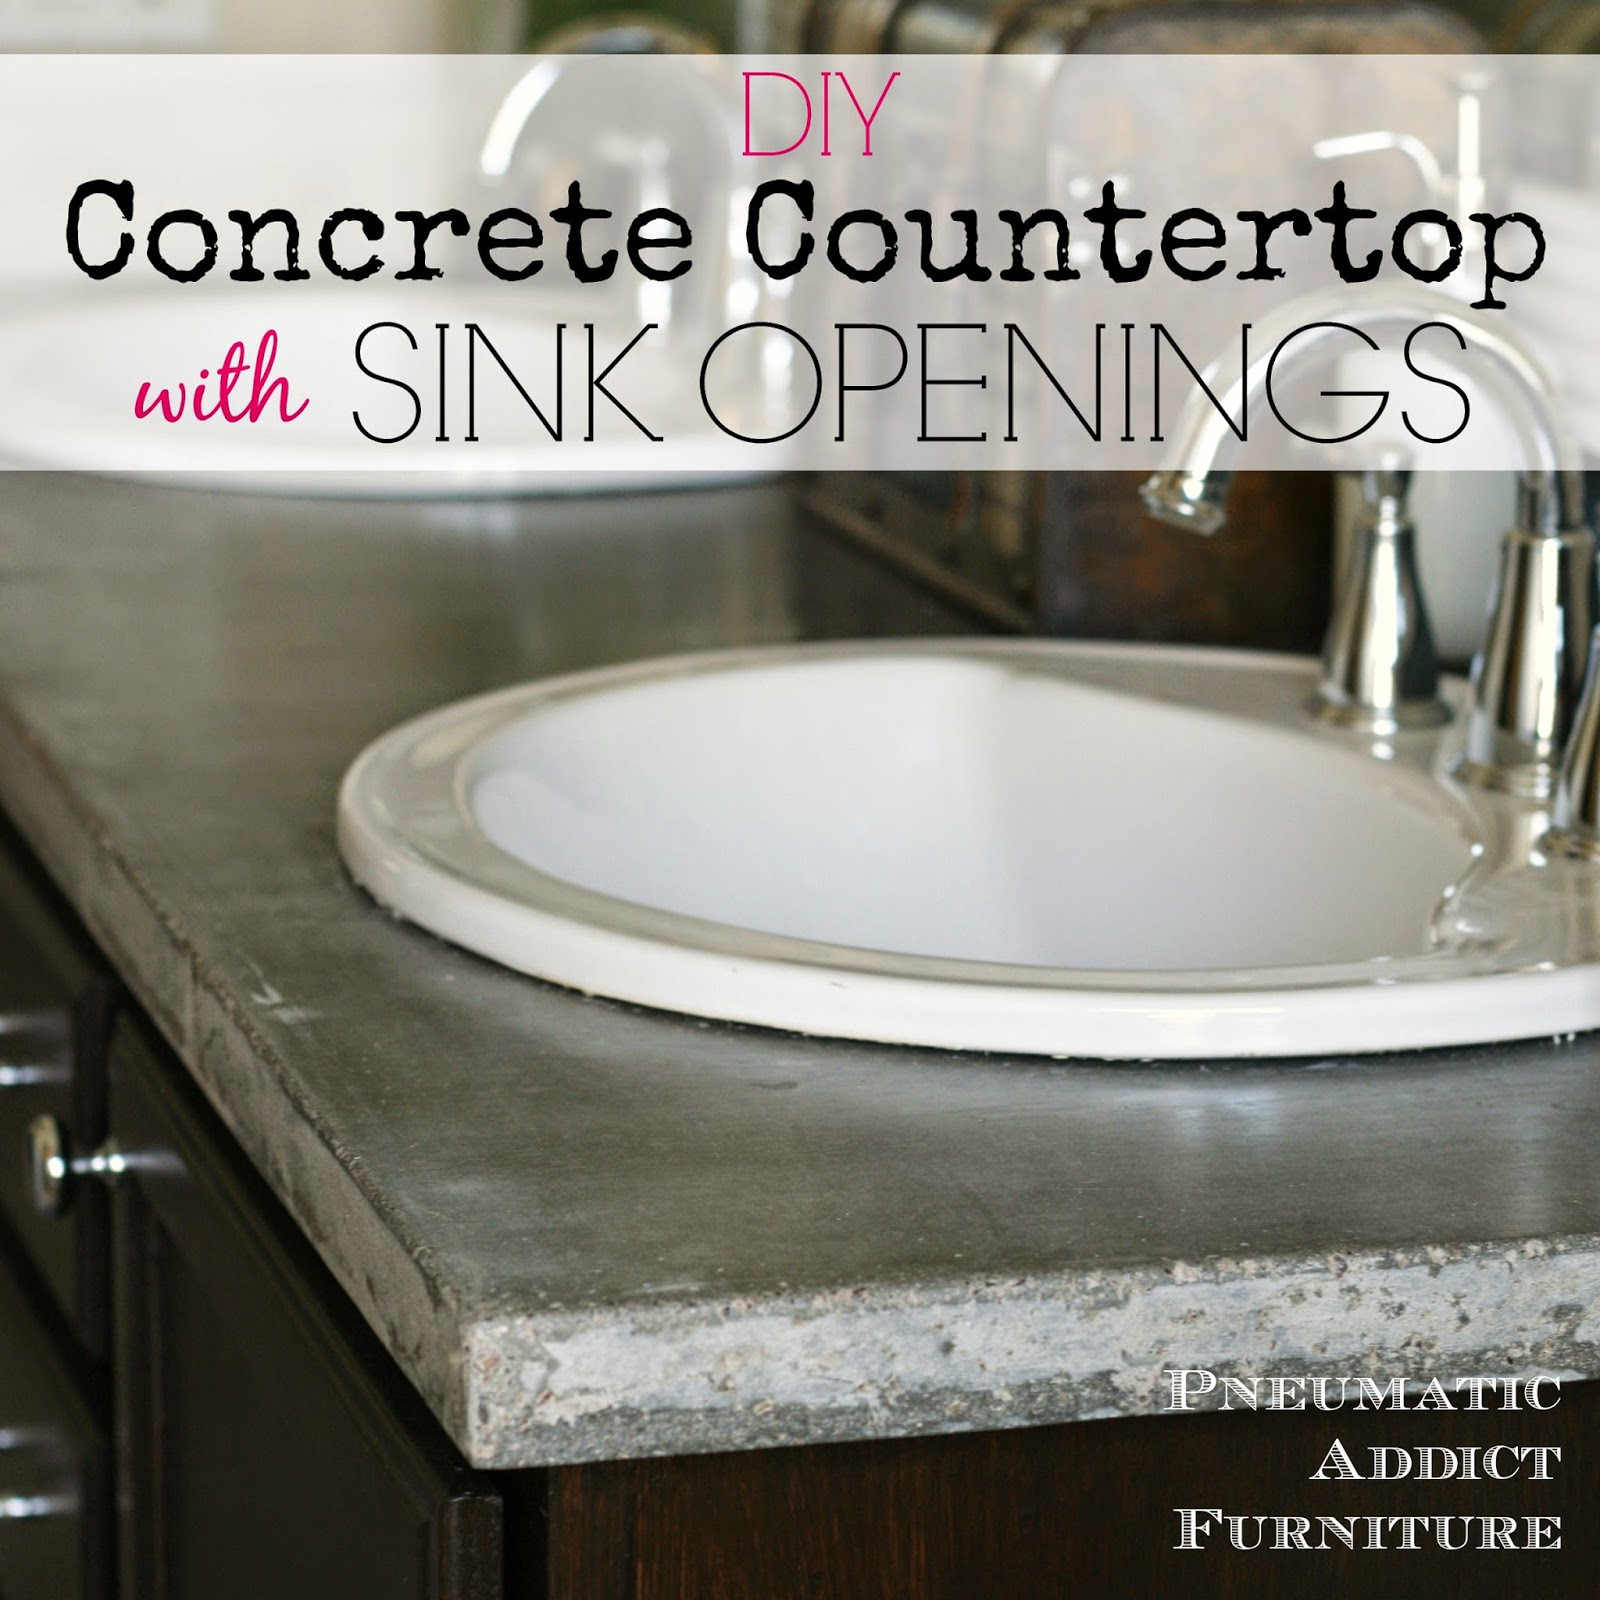 Diy Concrete Countertop With Sink Openings Pneumatic Addict